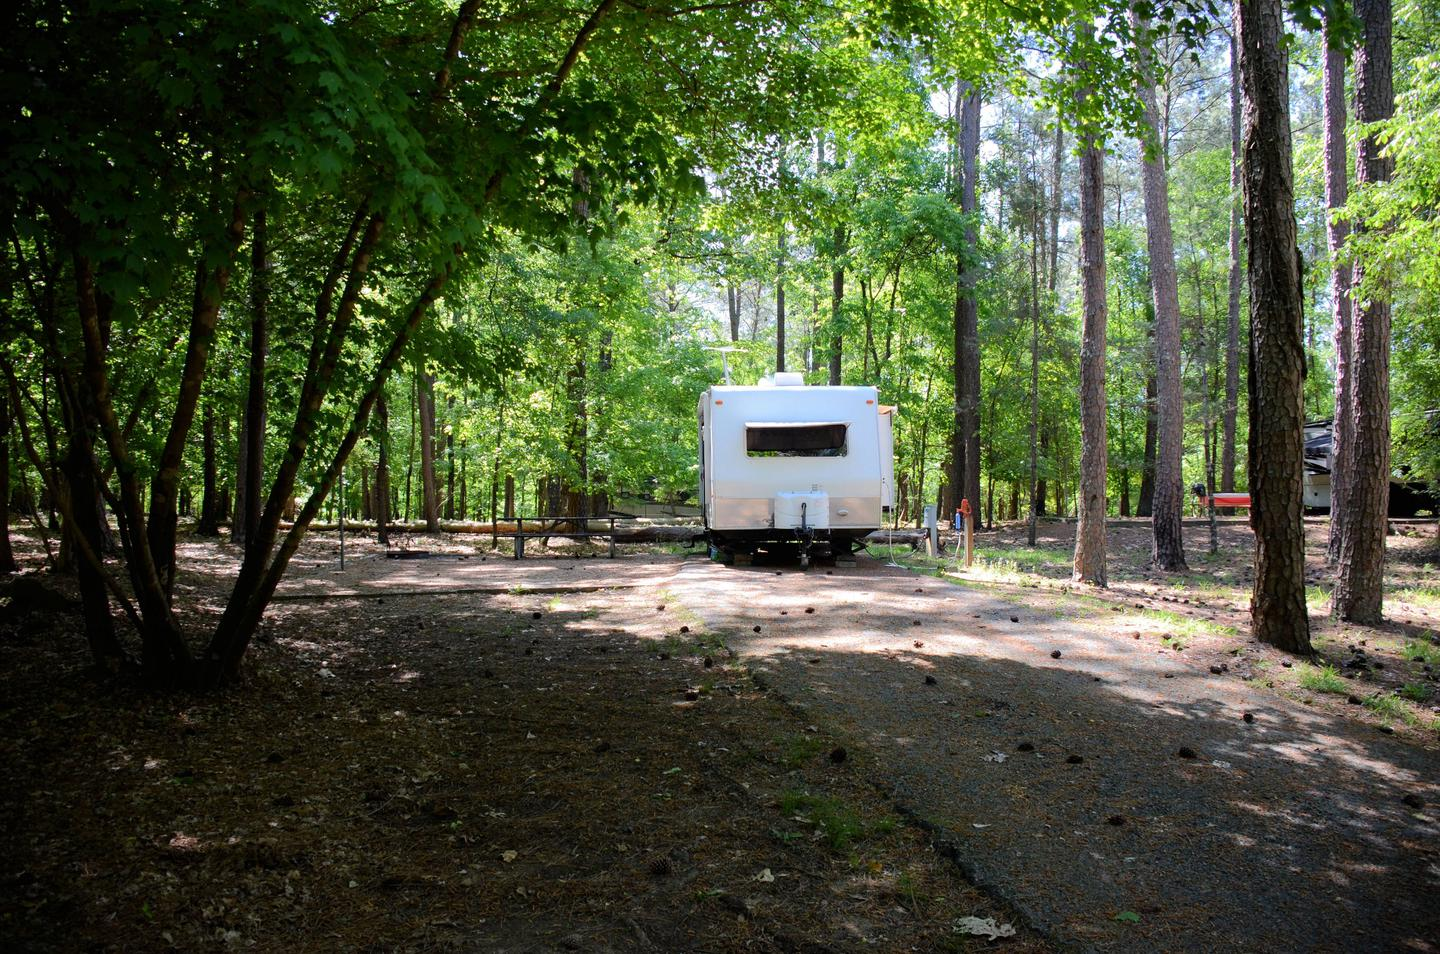 Driveway slope, utilities-side clearance, awning-side clearance.McKinney Campground, campsite 66.